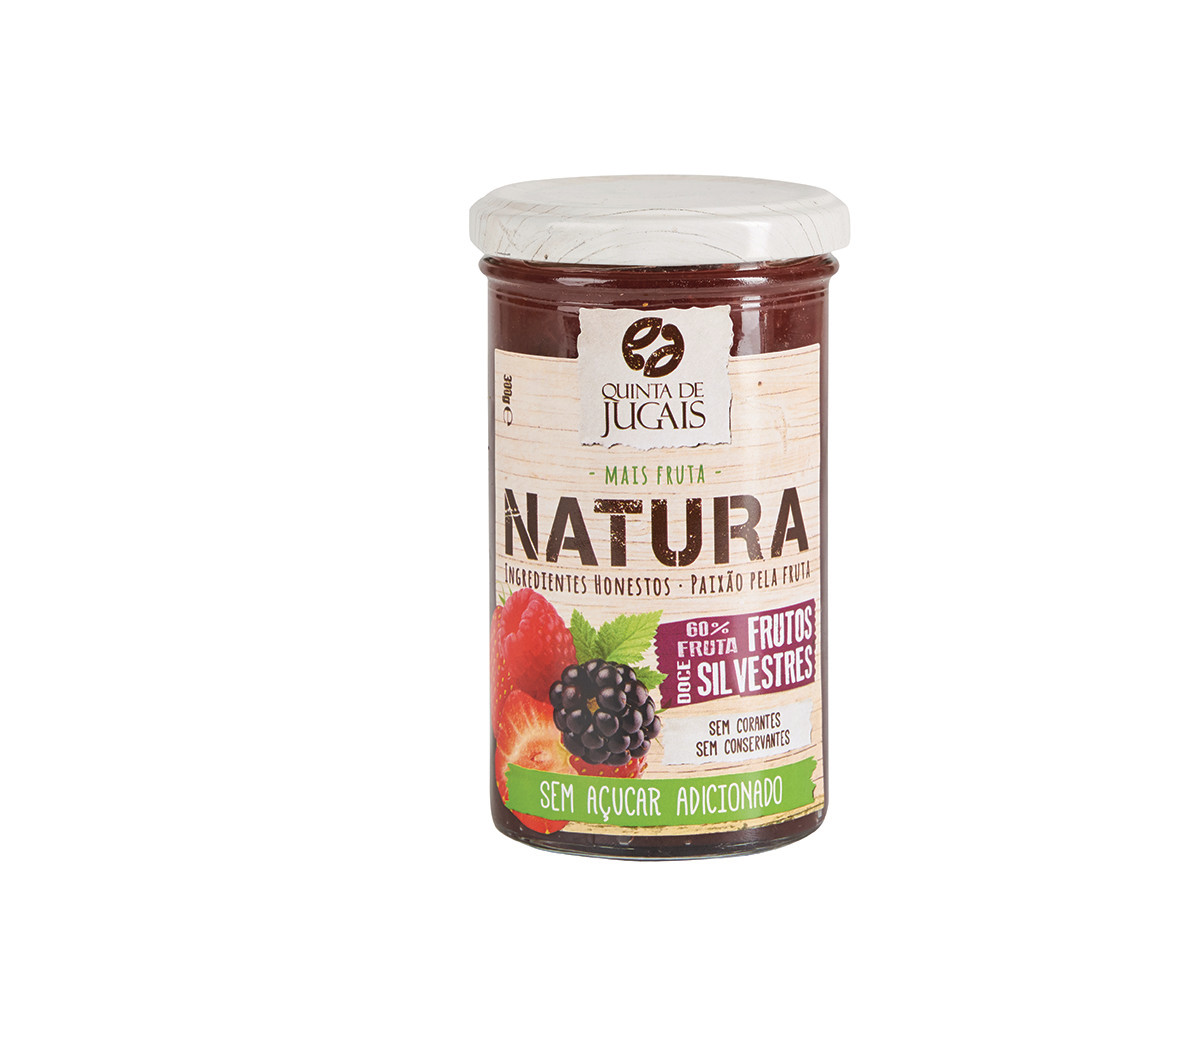 Wild Berries / Doce 300 gr (Quinta Jugais) - Natura - No Sugar Added